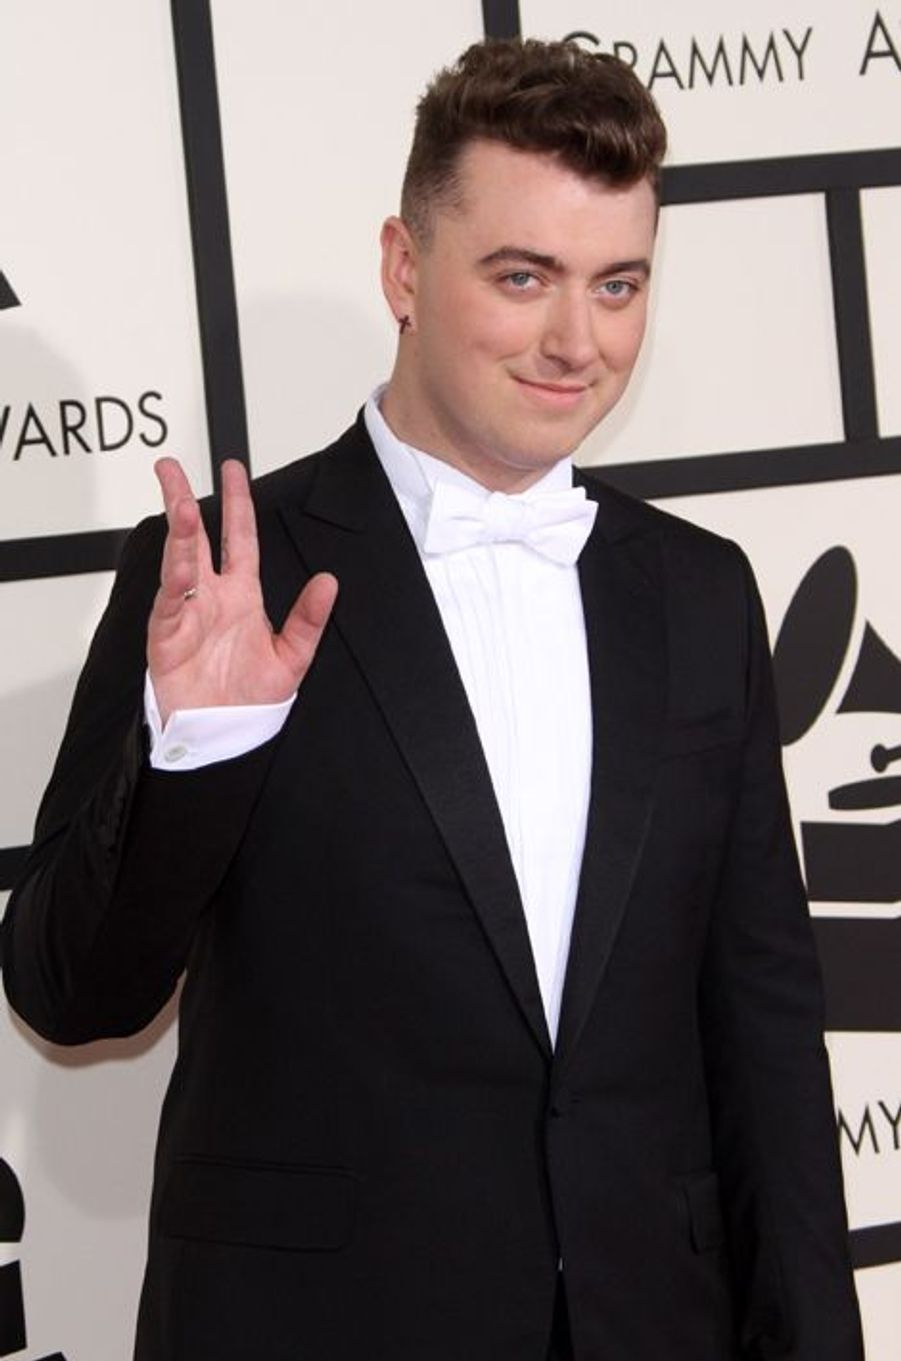 Sam Smith à Los Angeles le 8 février 2015